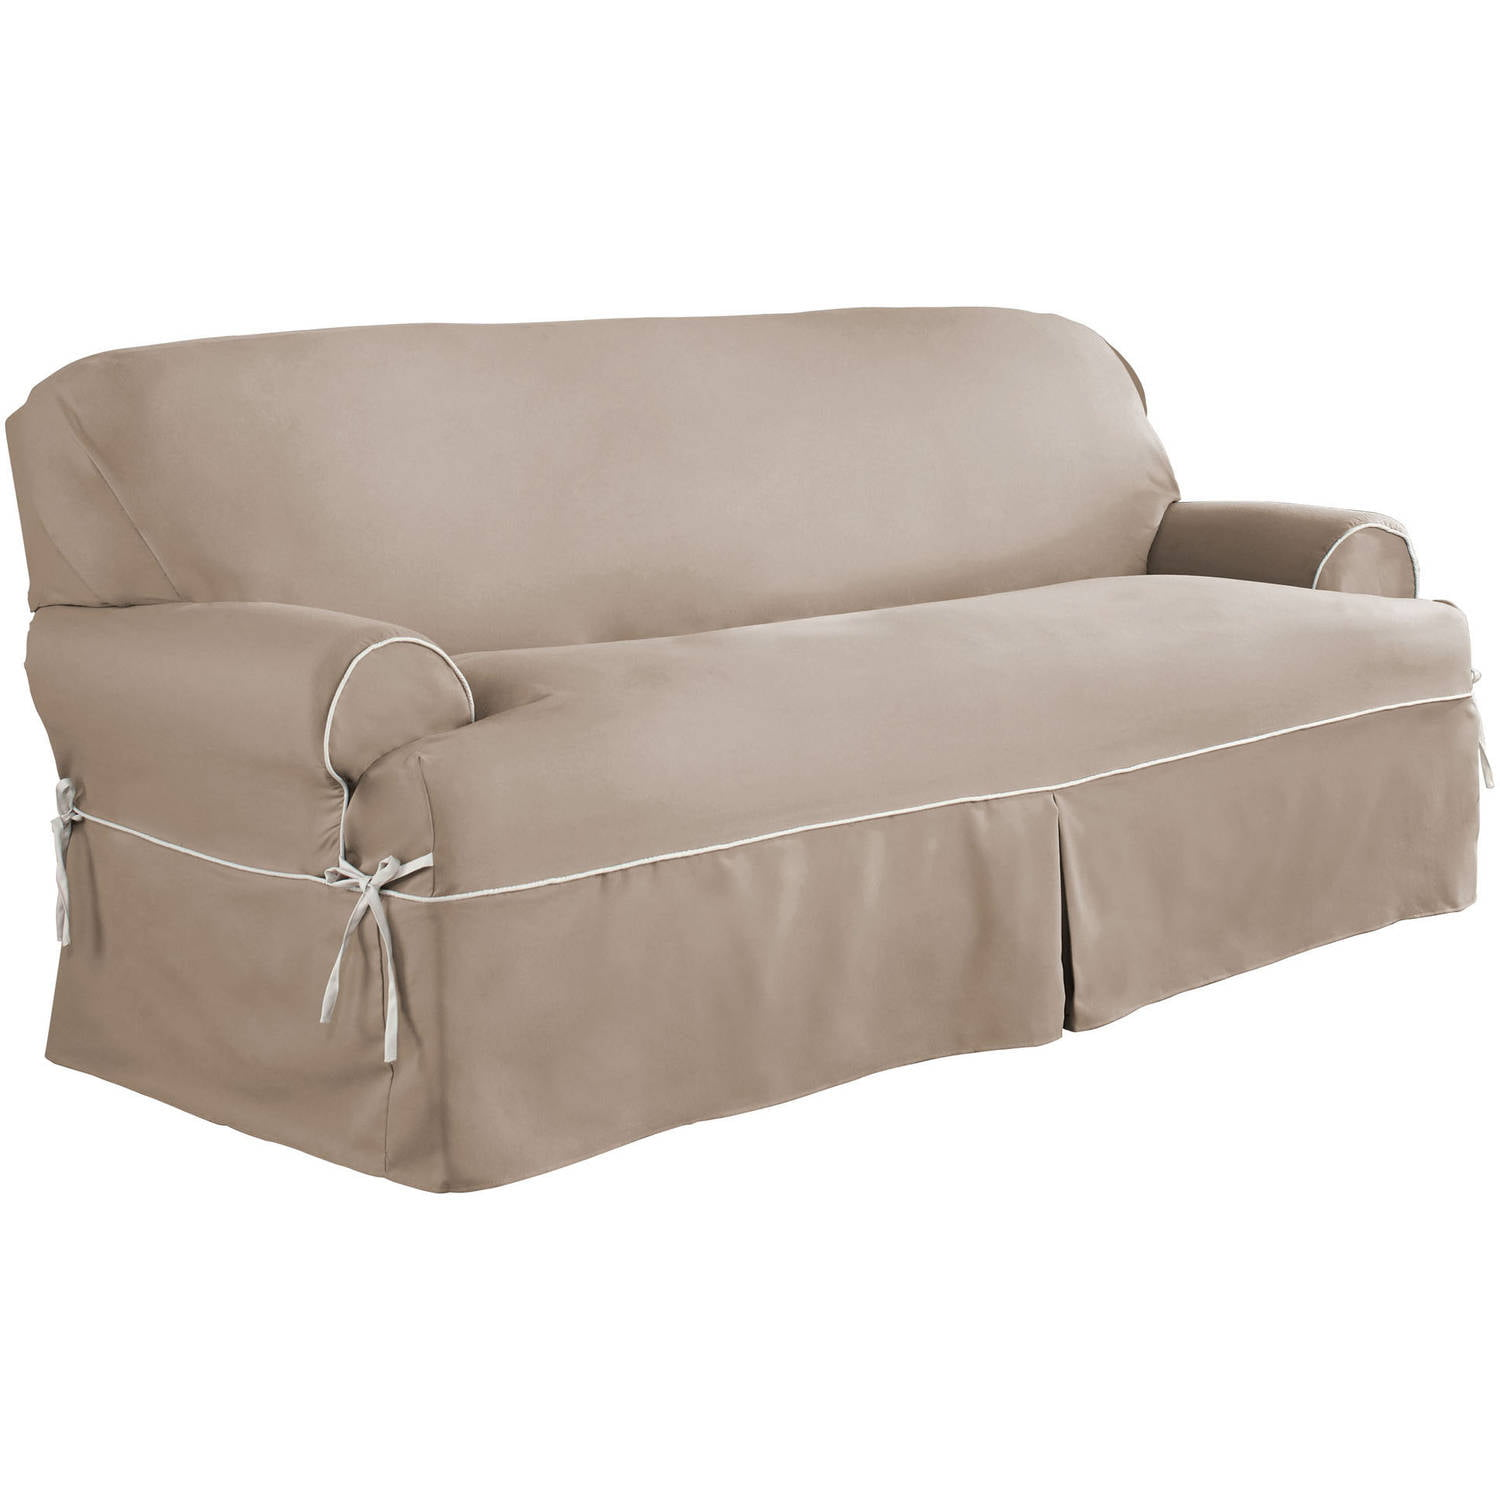 Serta Relaxed Fit Duck Furniture Slipcover Sofa 1 Piece T Cushion